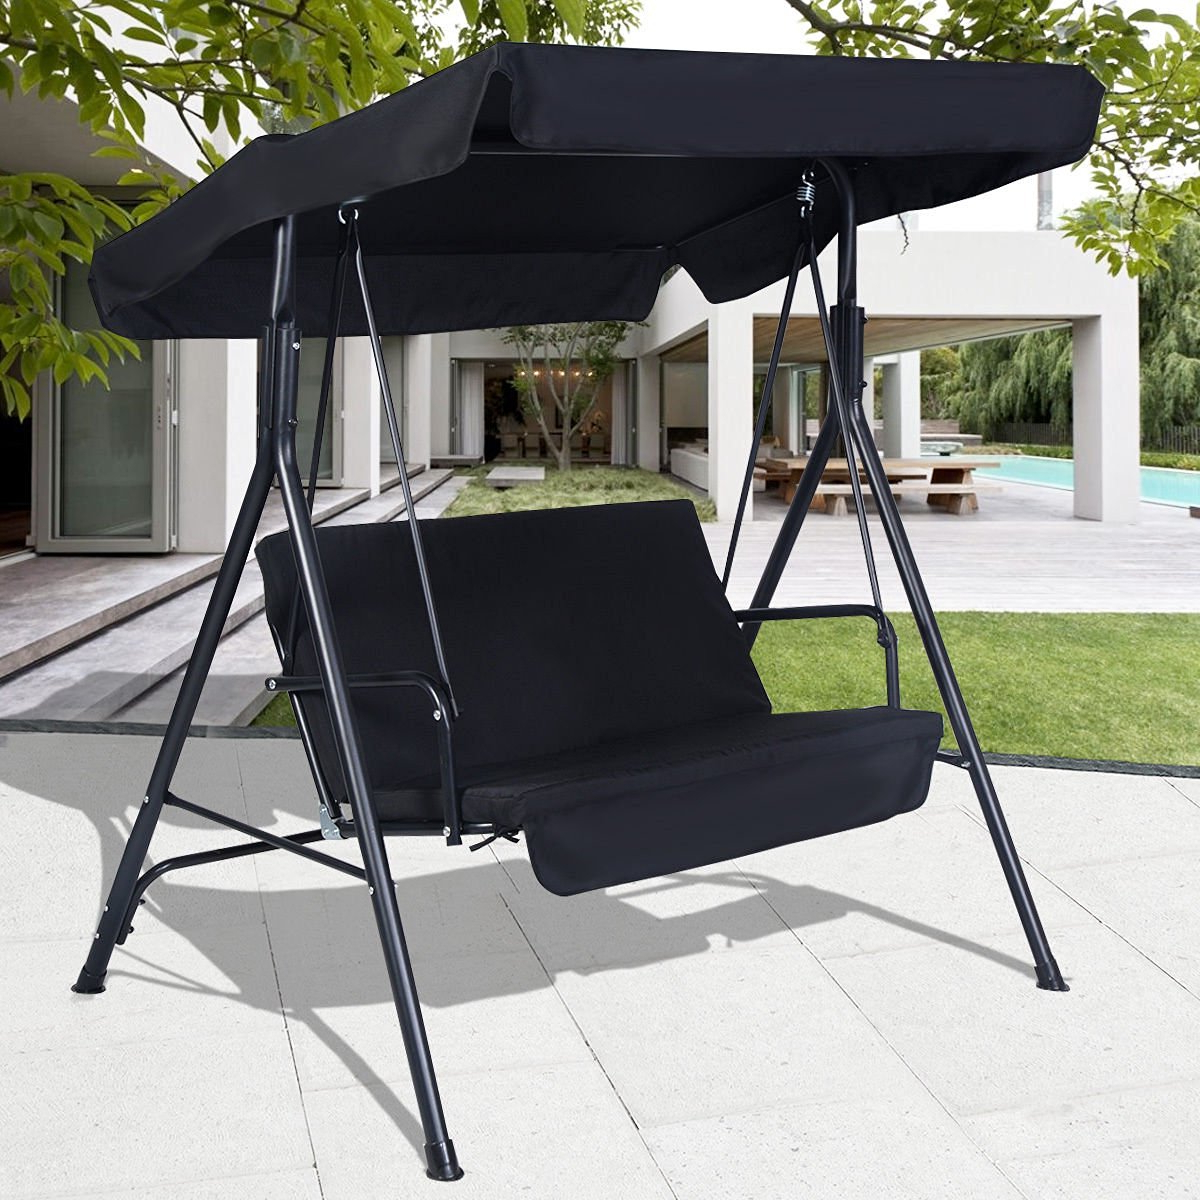 2019 Buy Swings Black Outdoor Patio Swing Canopy Awning Yard Pertaining To 2 Person Gray Steel Outdoor Swings (Gallery 1 of 25)